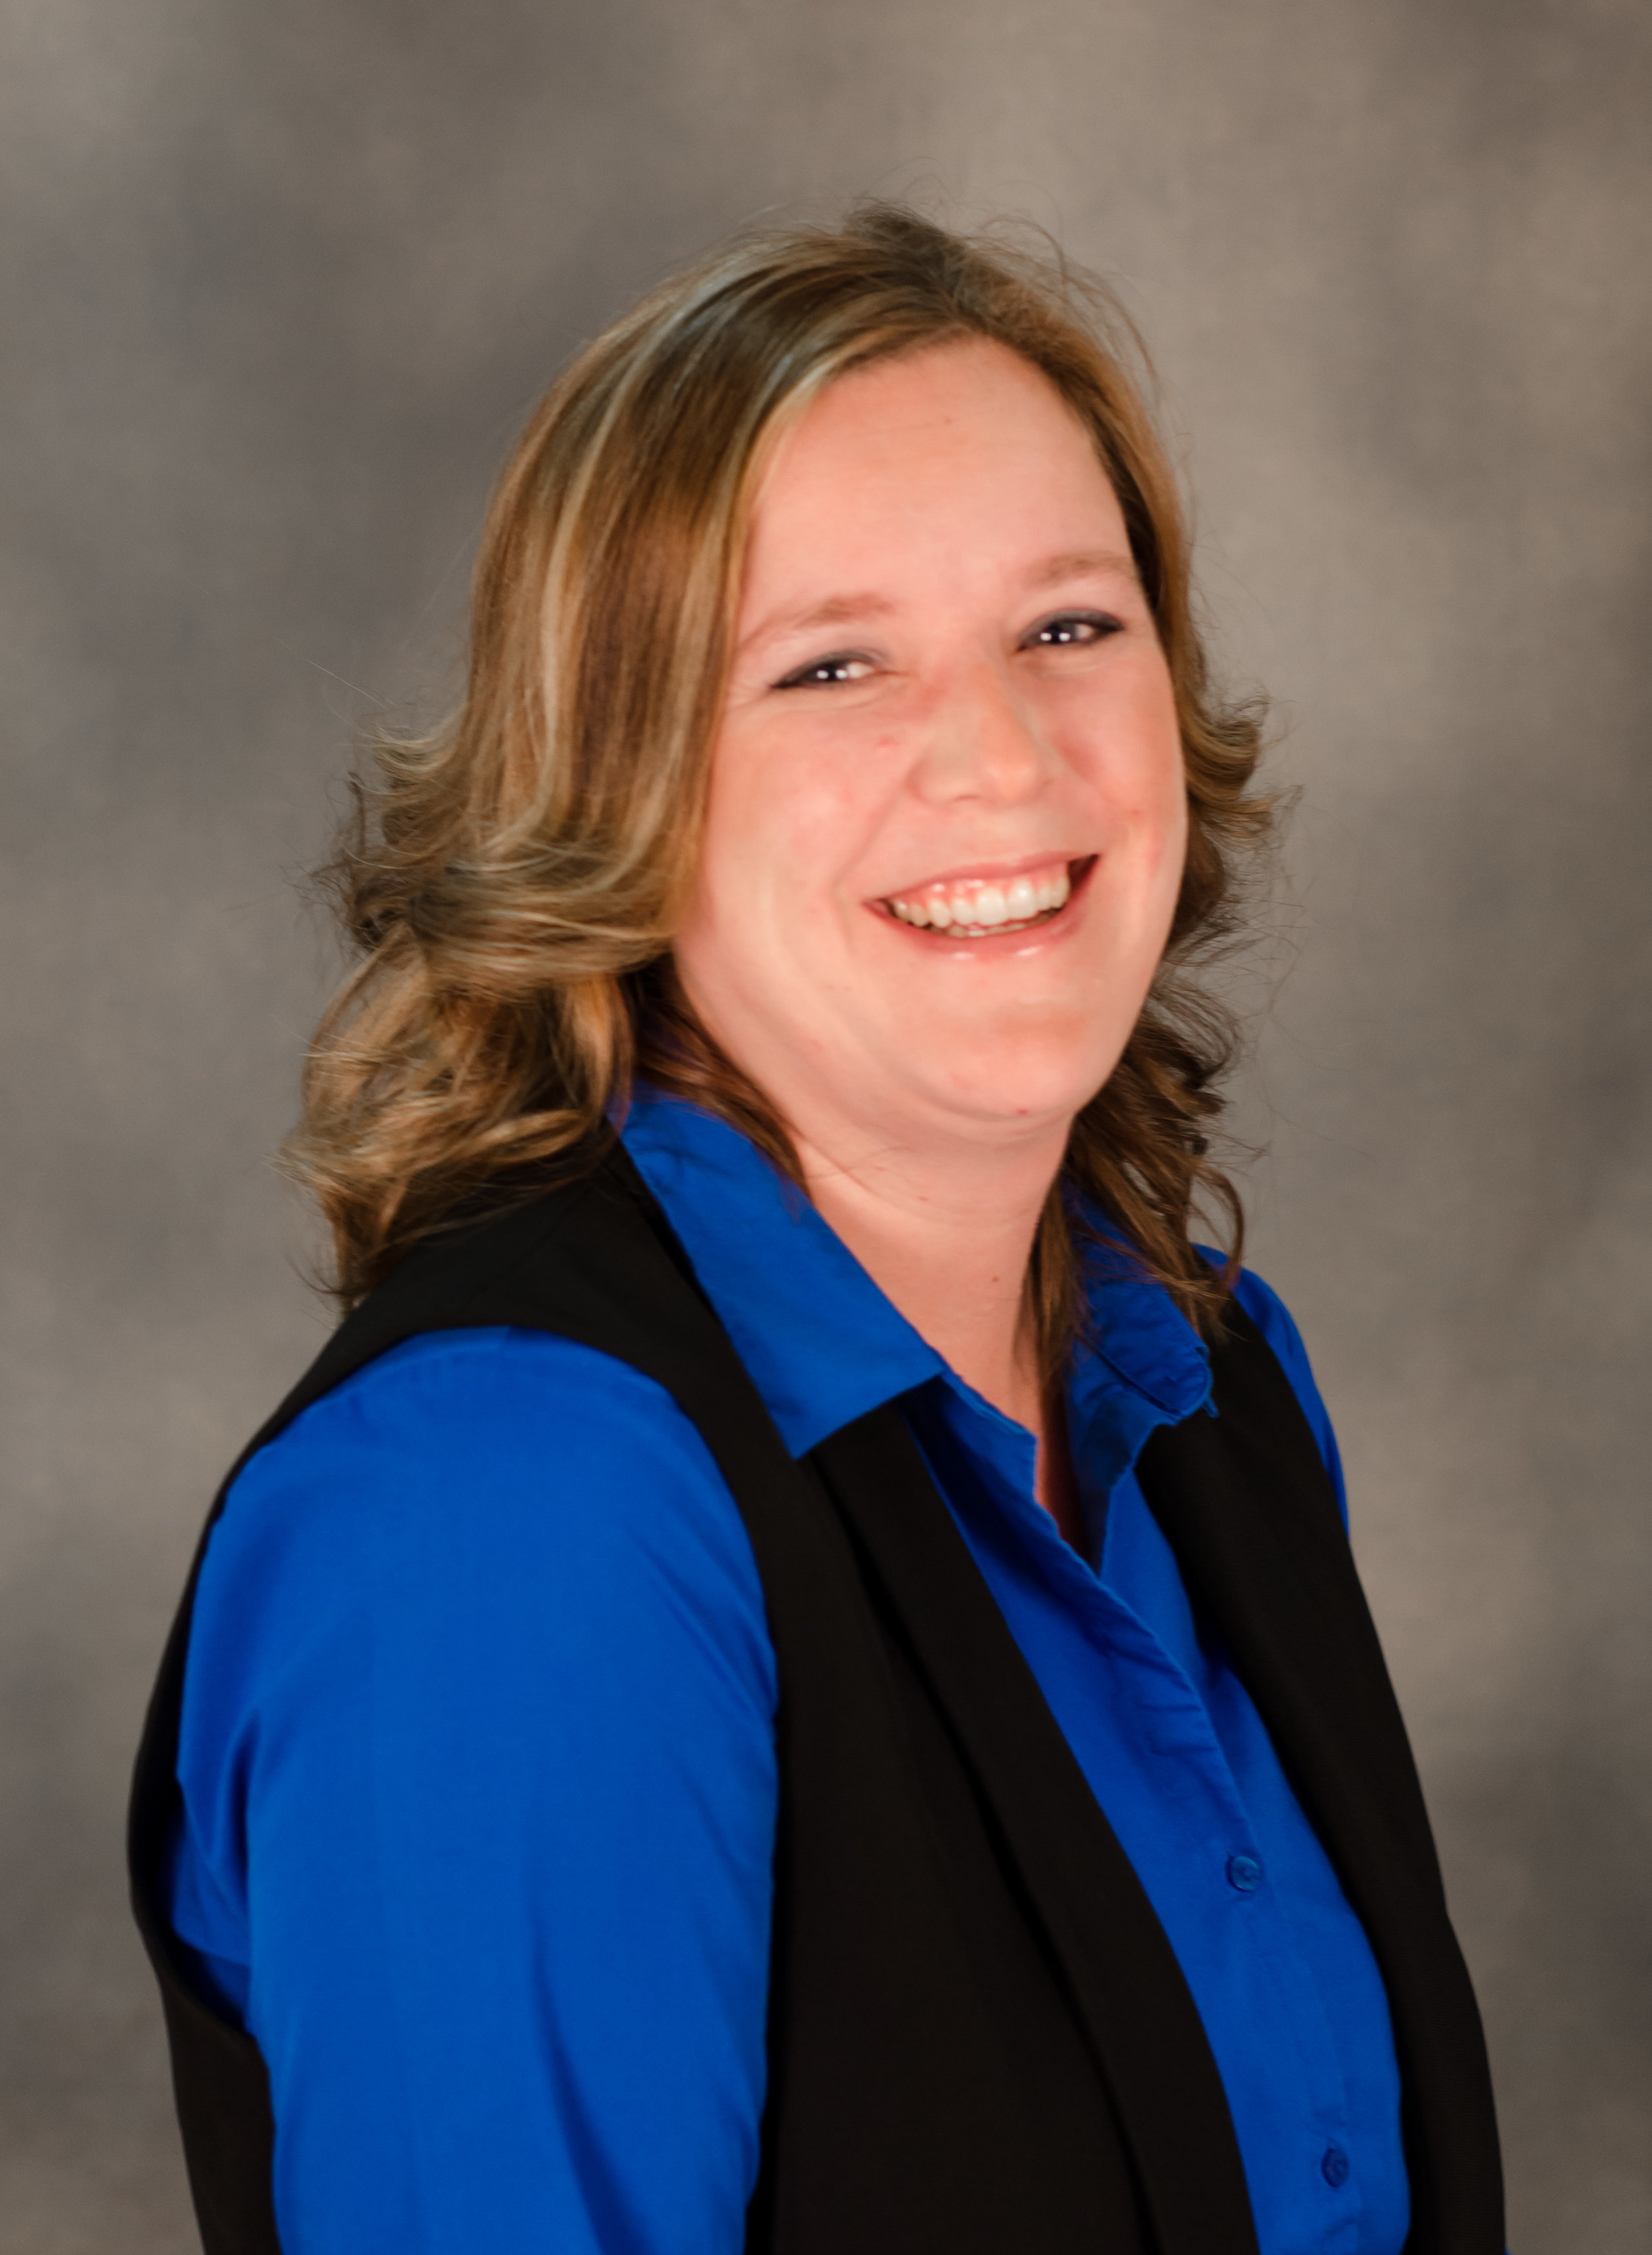 Susan is an amazingly helpful, dedicated, and talented member of our team!